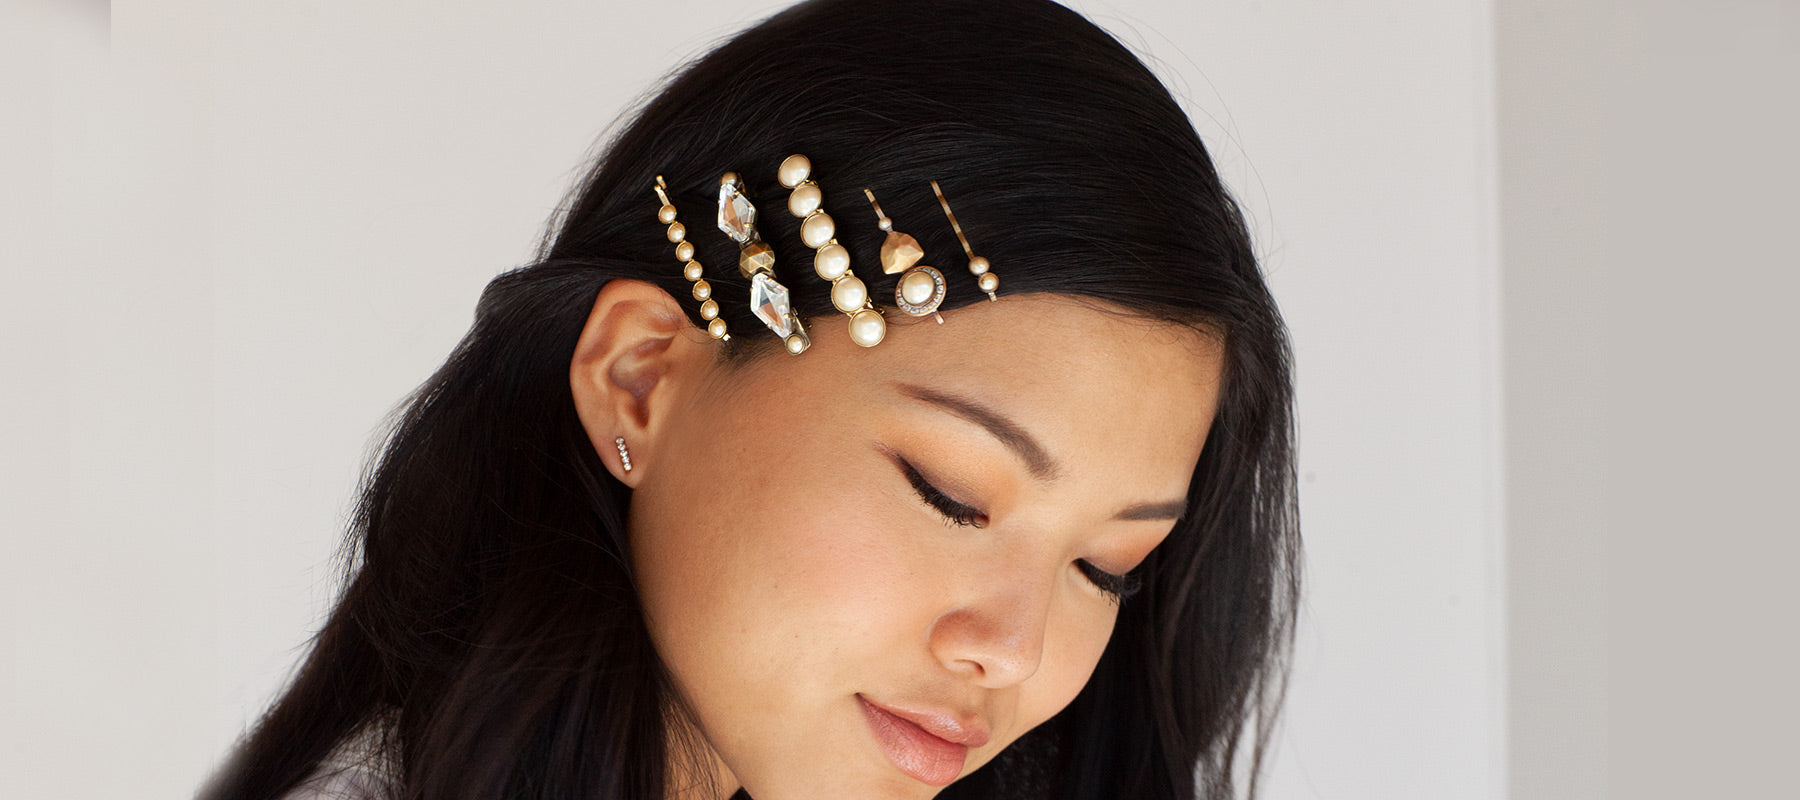 Barrette Accessories